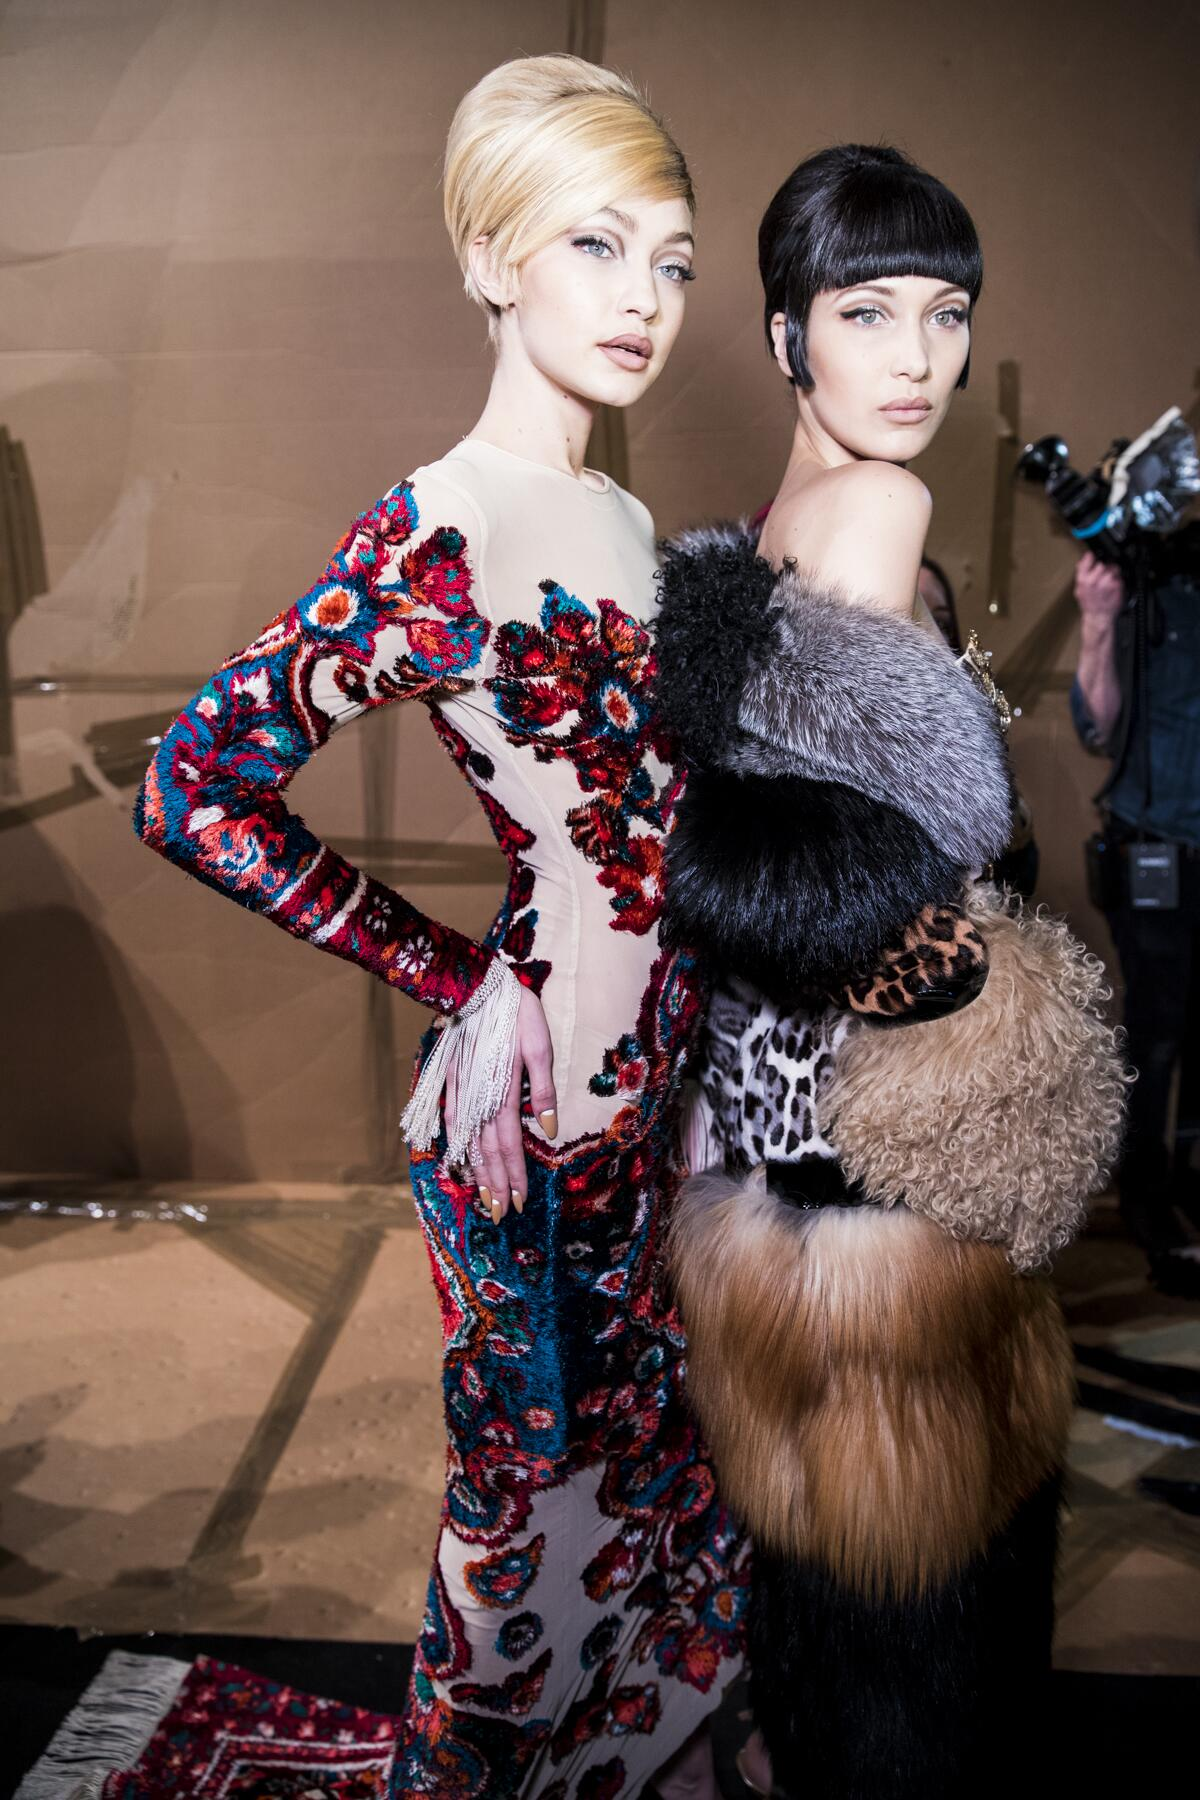 Backstage Moschino Gigi Hadid and Bella Hadid 2017 Milan Fashion Week